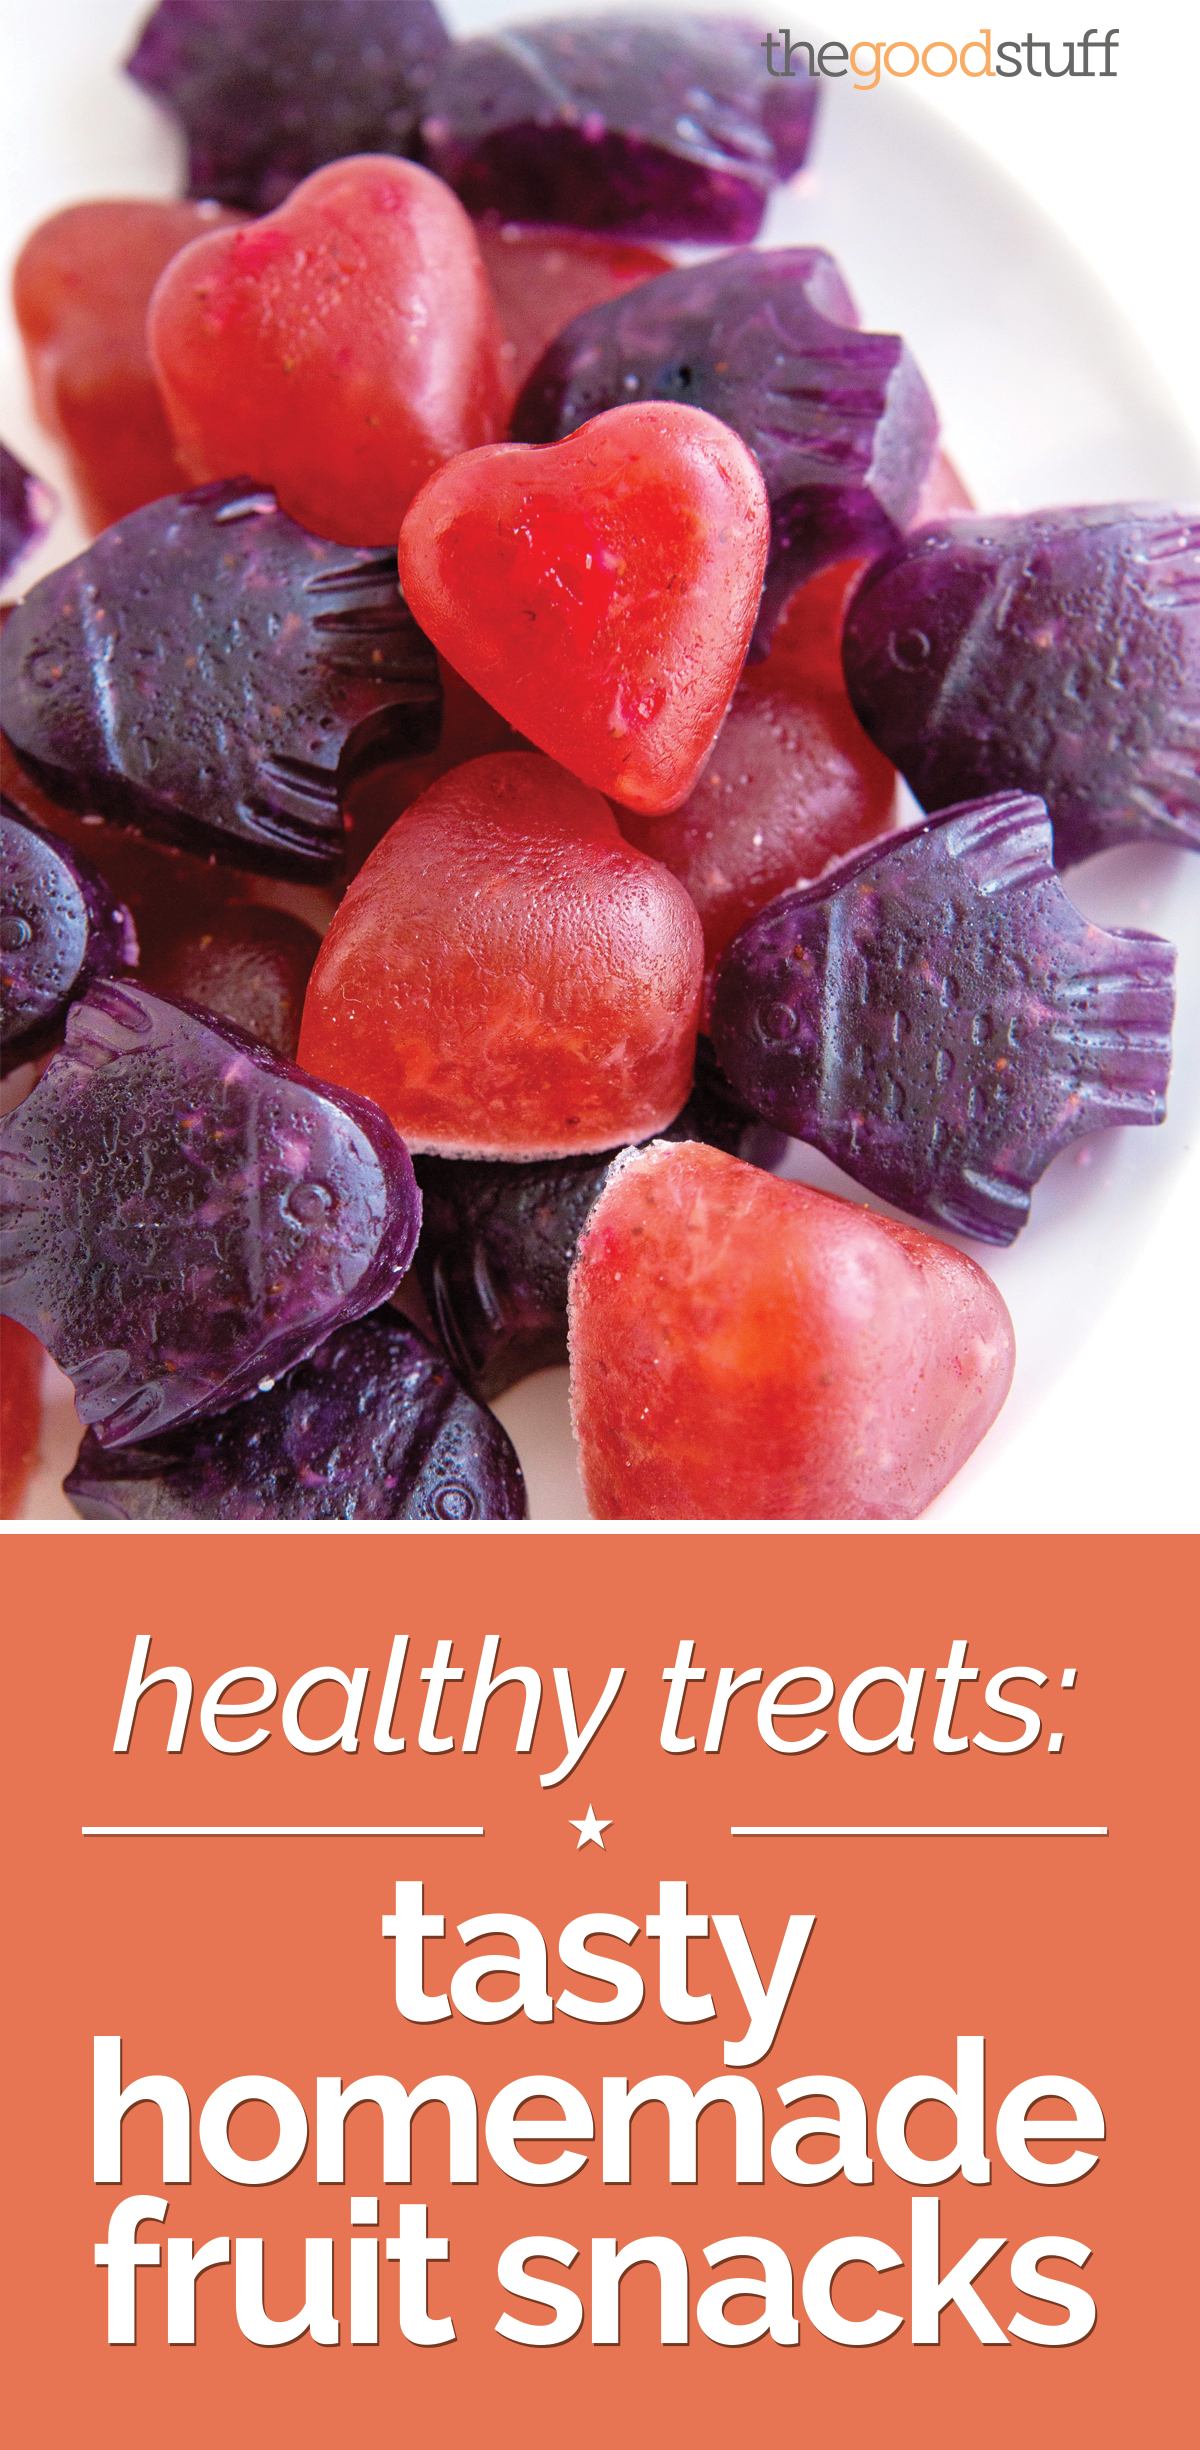 Healthy Treats: Tasty Homemade Fruit Snacks | thegoodstuff